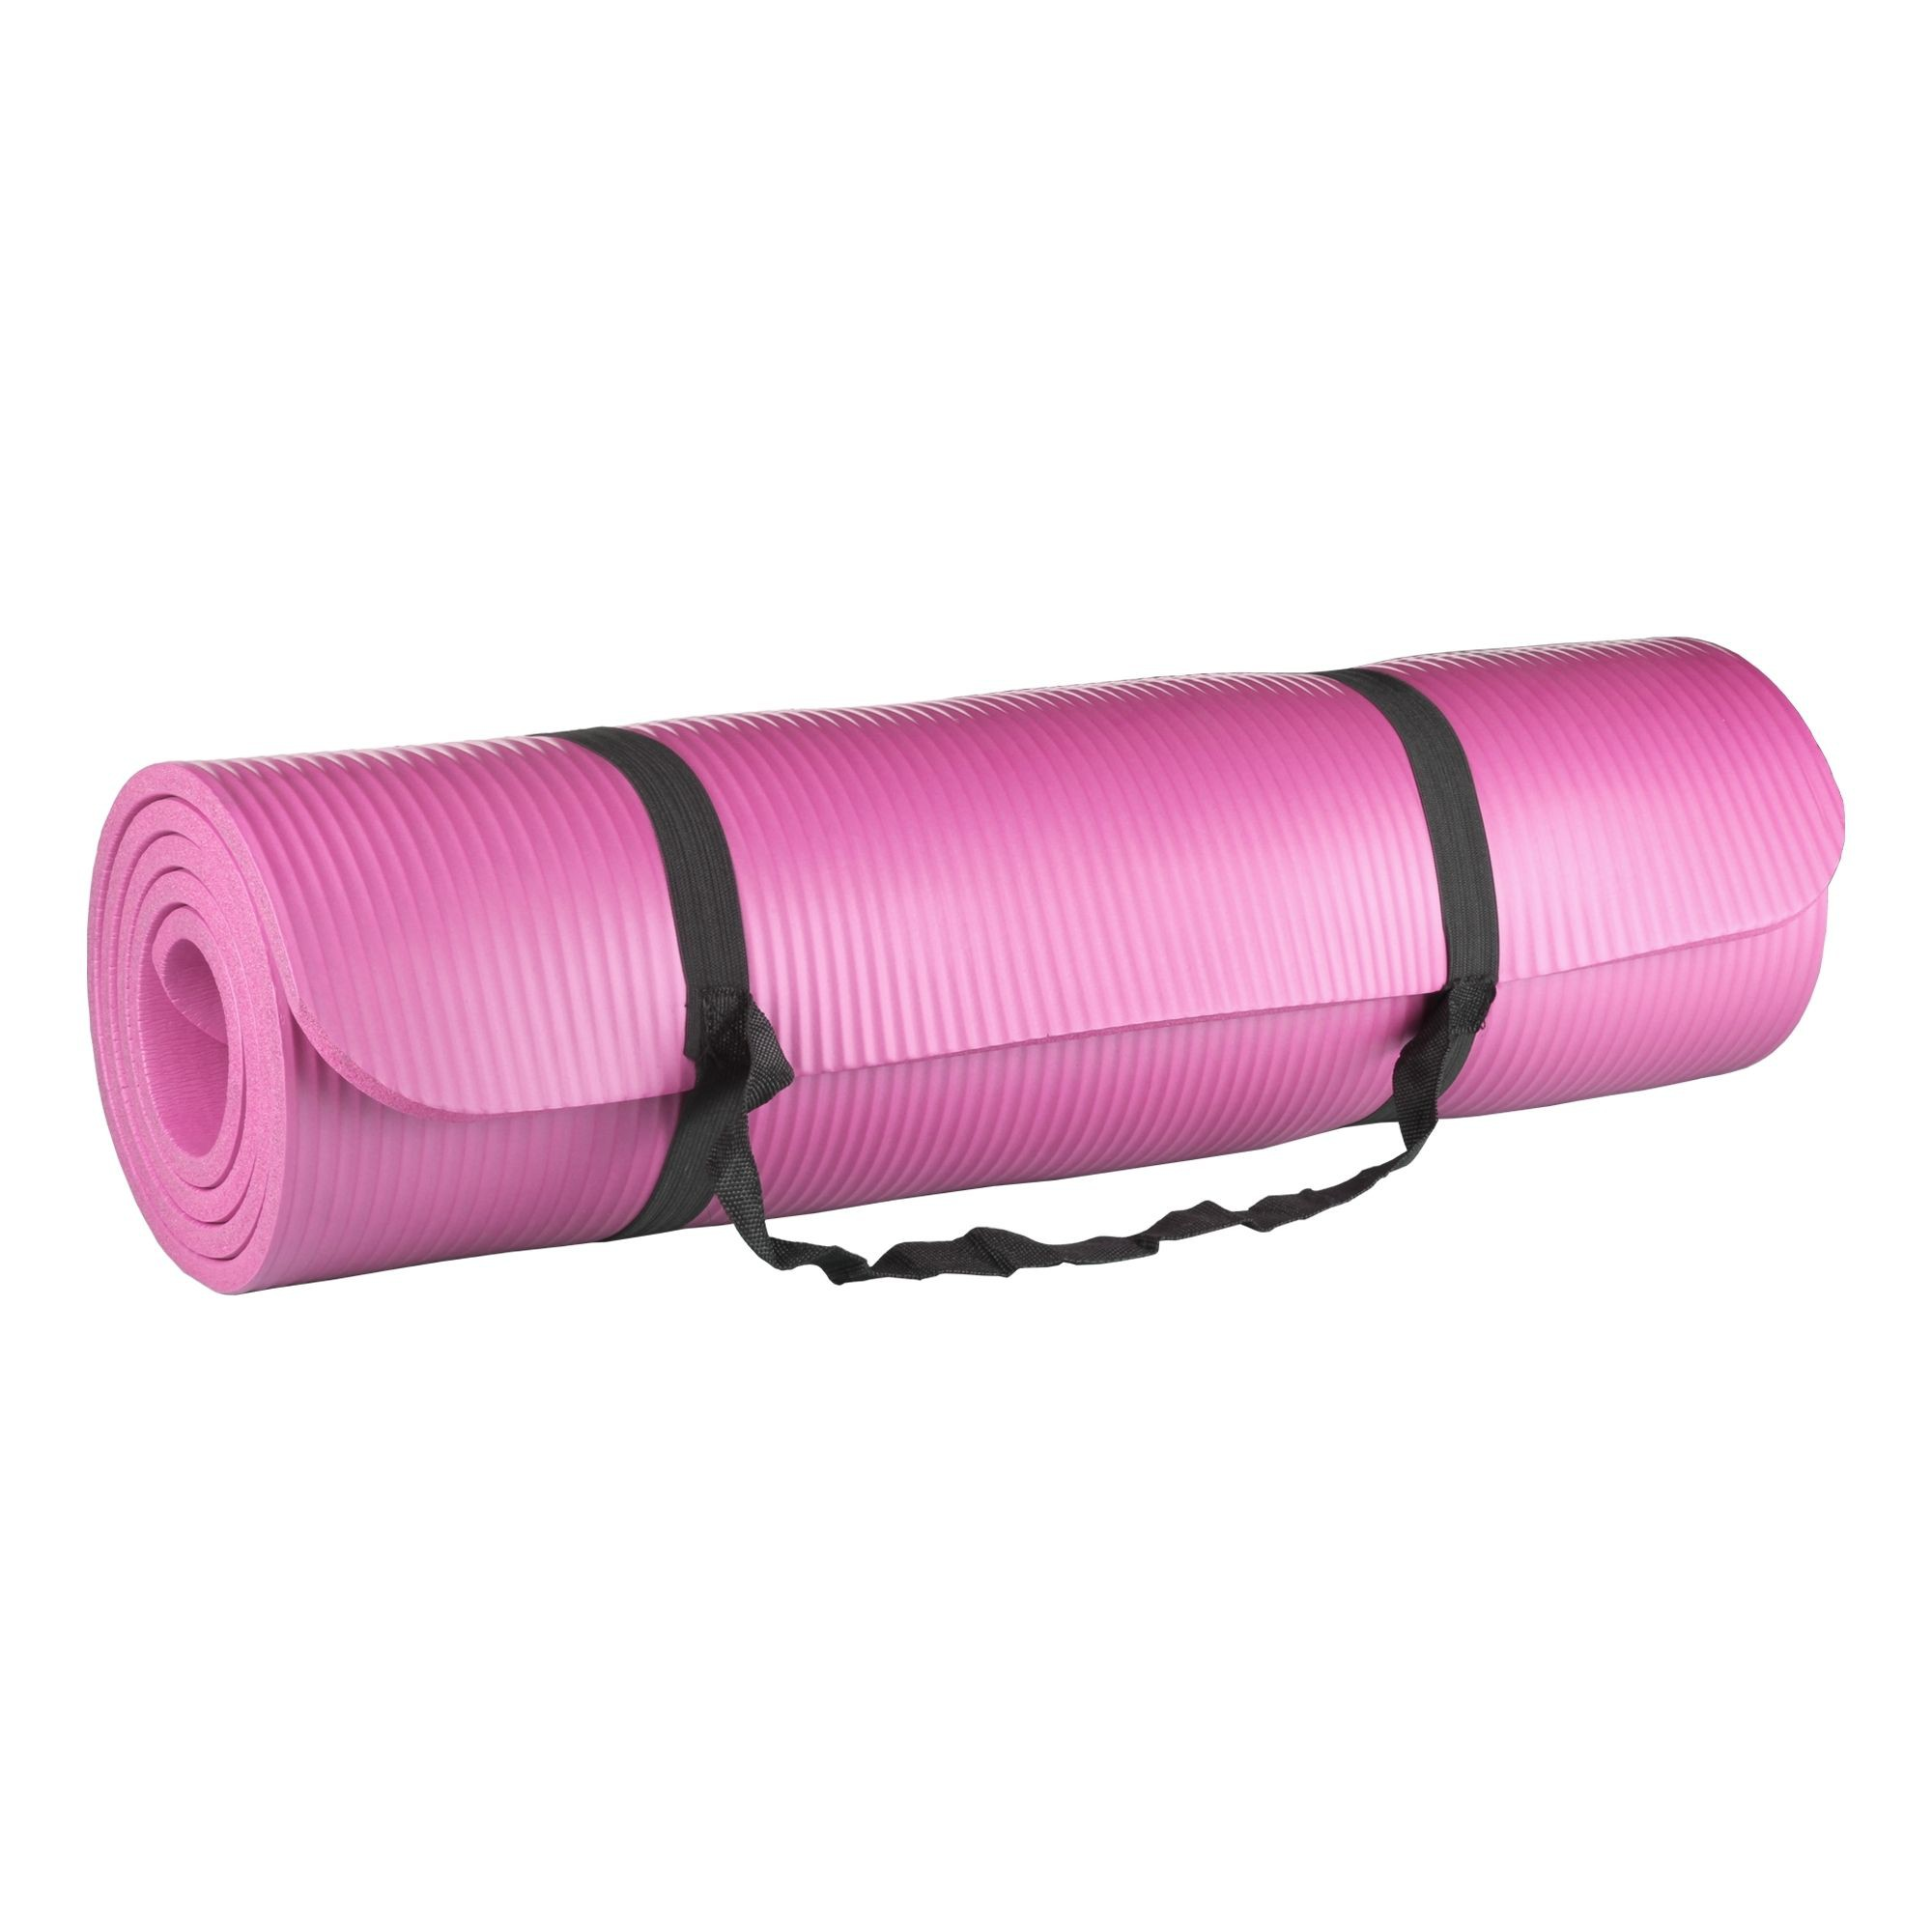 Tapete para Yoga e Pilates 10mm Rosa